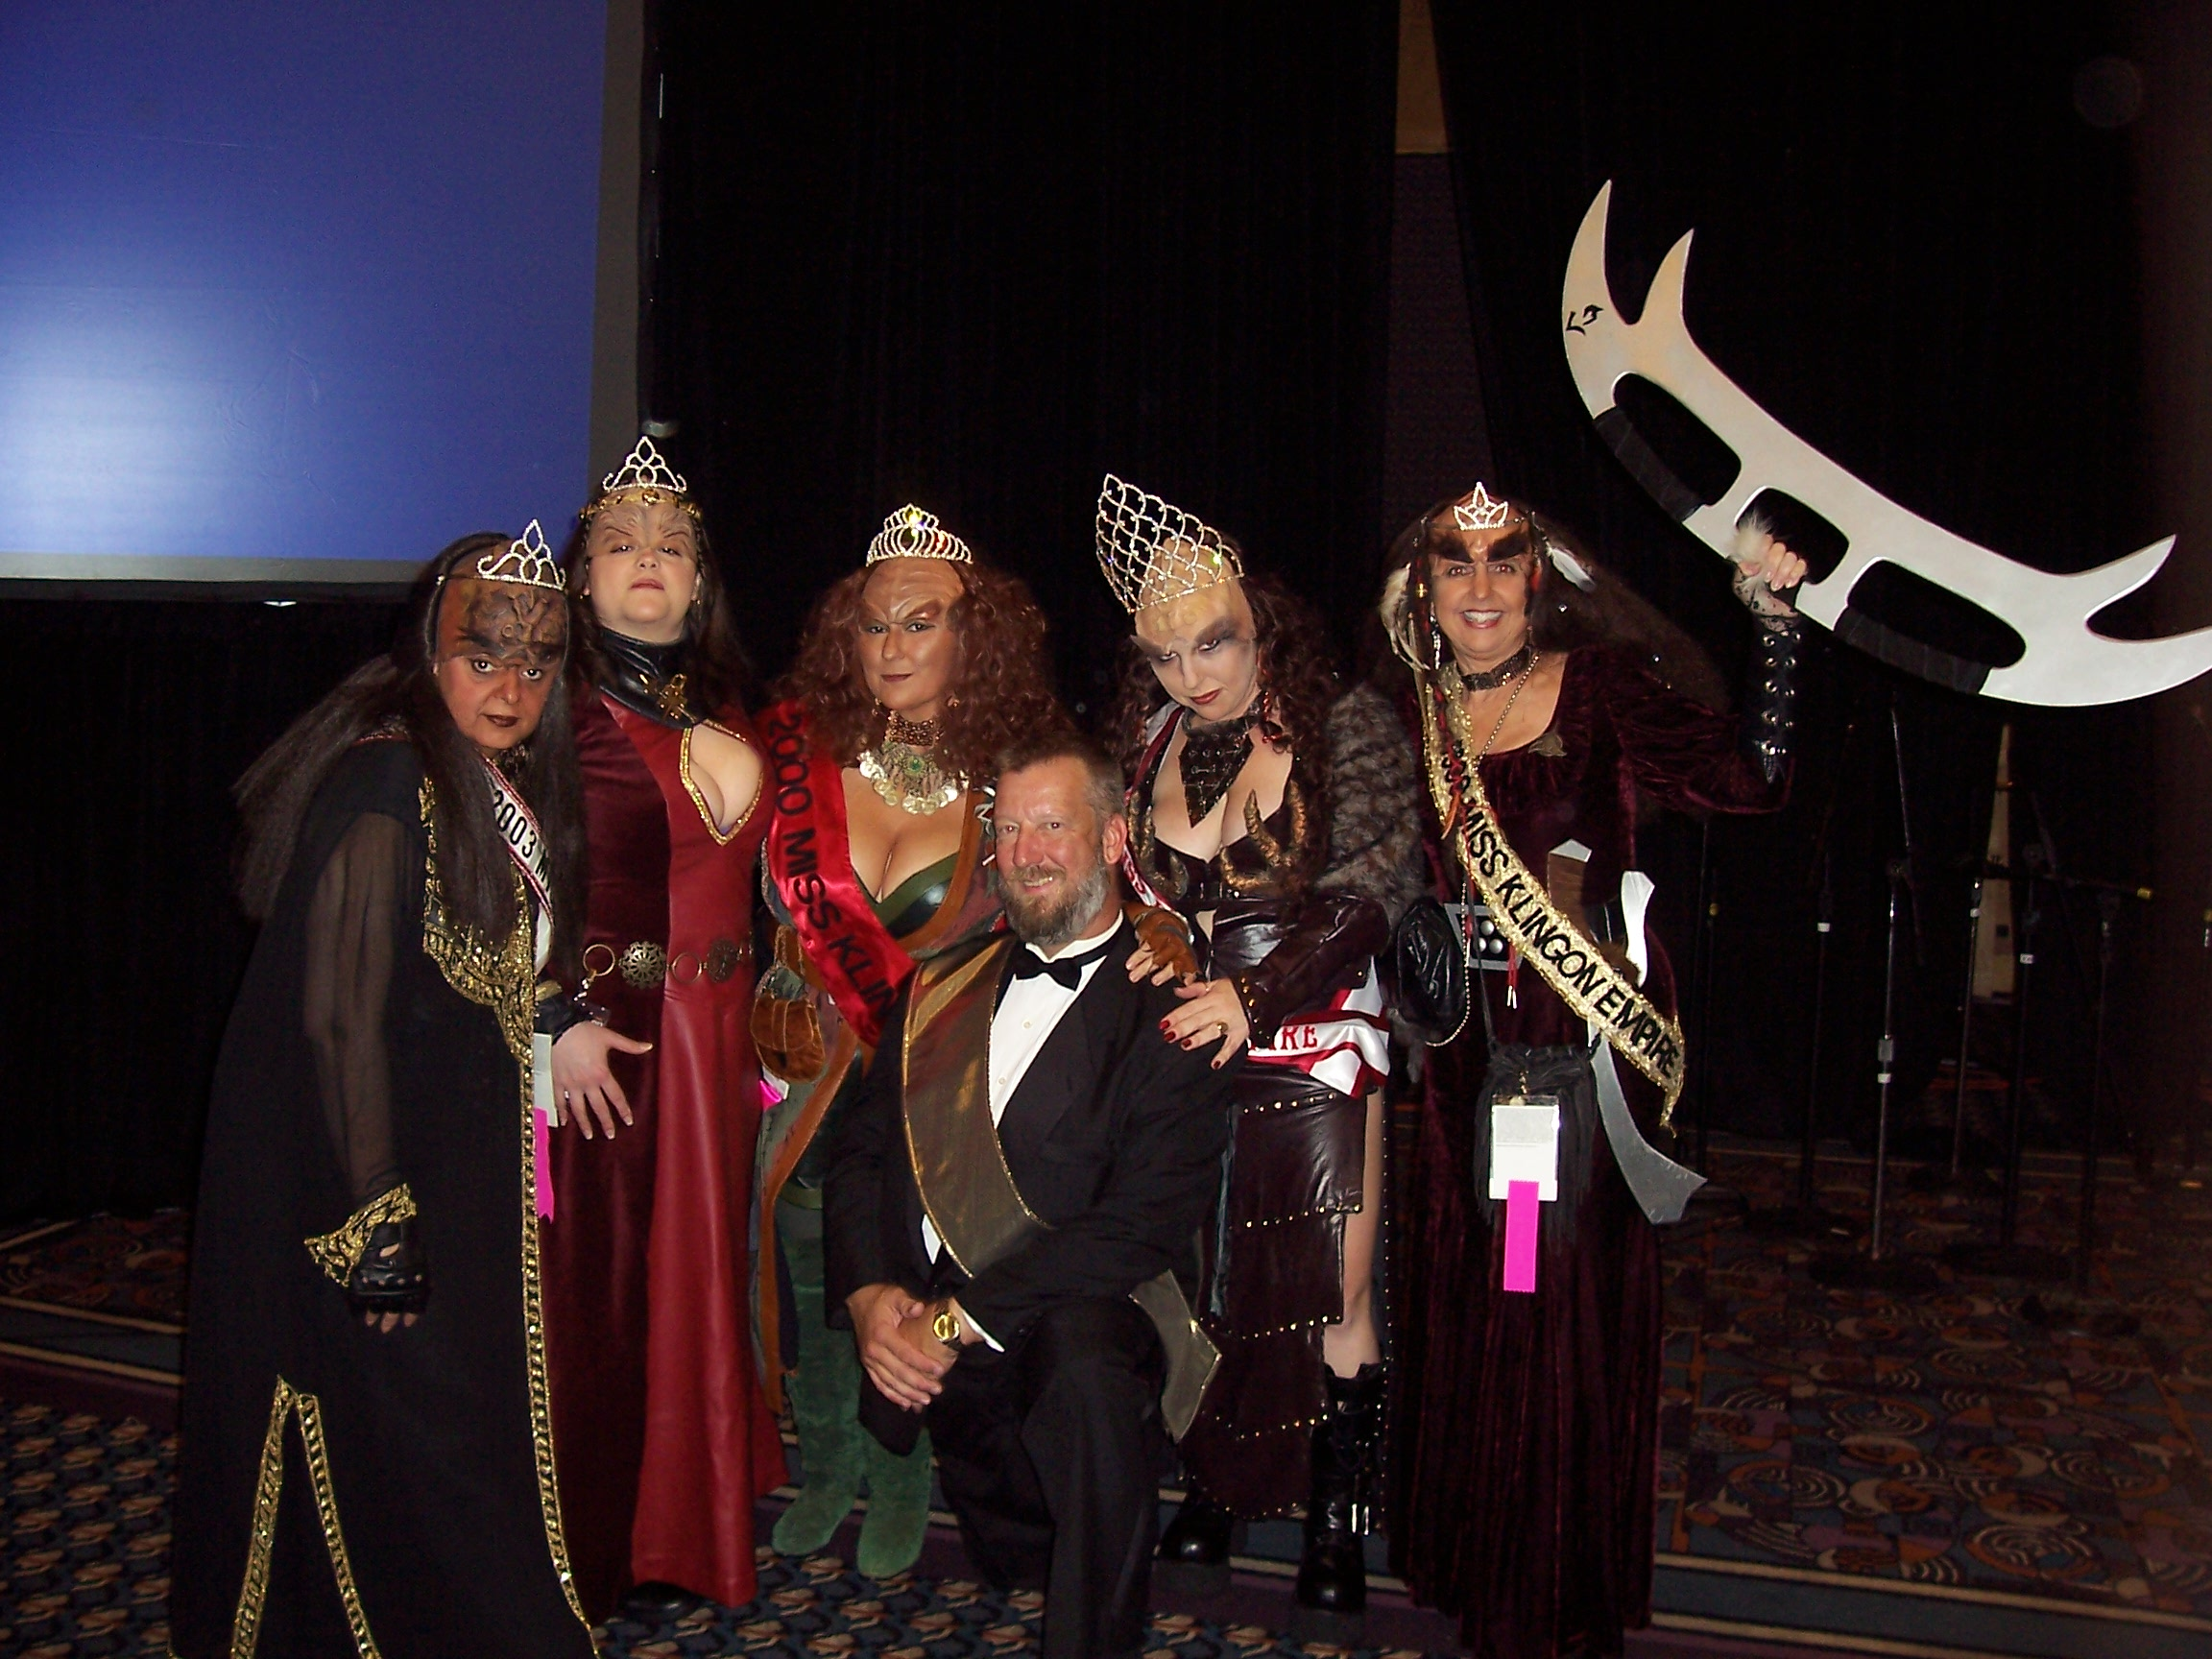 Four of the first five winners of the Miss Klingon Empire Beauty Pageant (1999-2004) return to bask in the glory of the 2005 pageant.  Created by Watts, the MKE pageant received a tremendous amount of media coverage in the mainstream press during its 11-year run at Dragon*Con, and will return as a highlight of TrekTrax Atlanta.